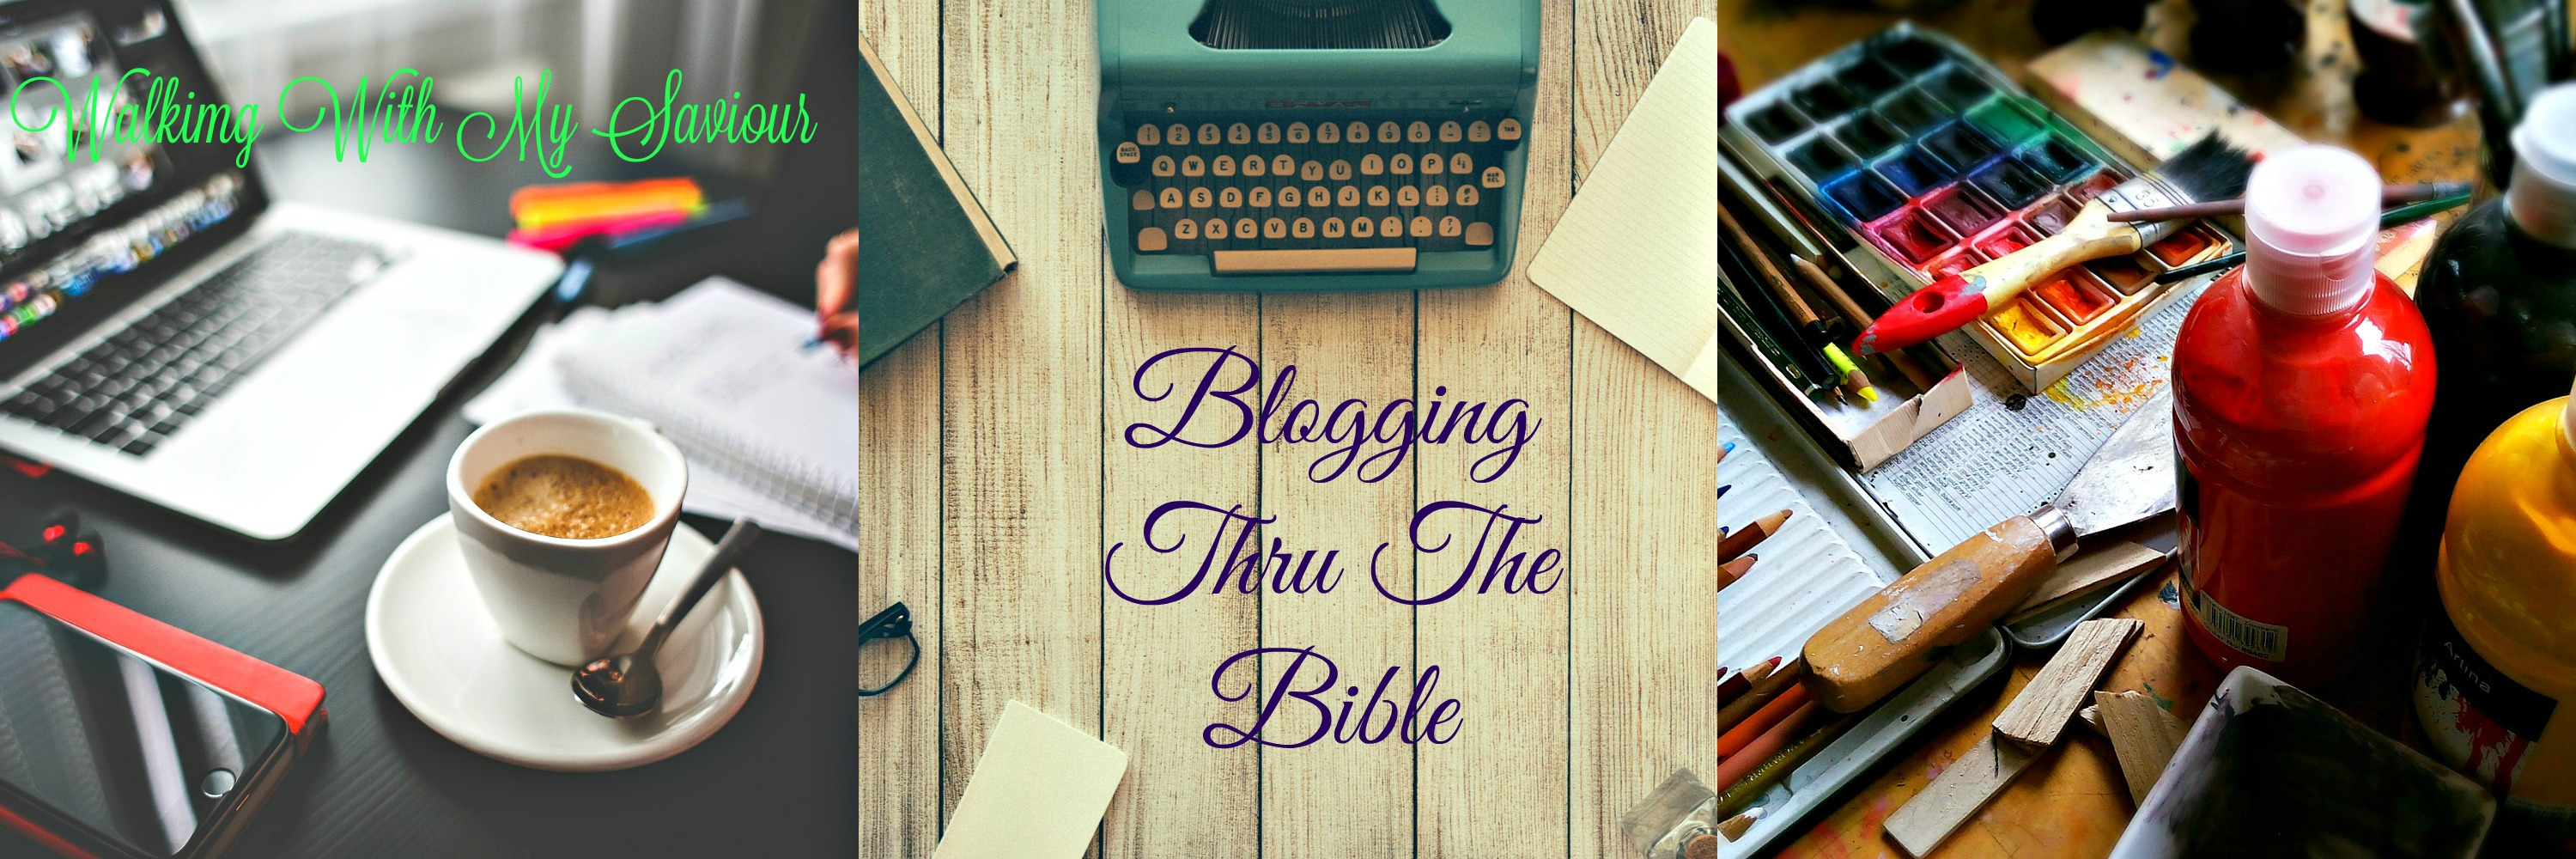 BLOGGING THRU THE BIBLE: Good Morning Girls Resources {Romans 6-10}